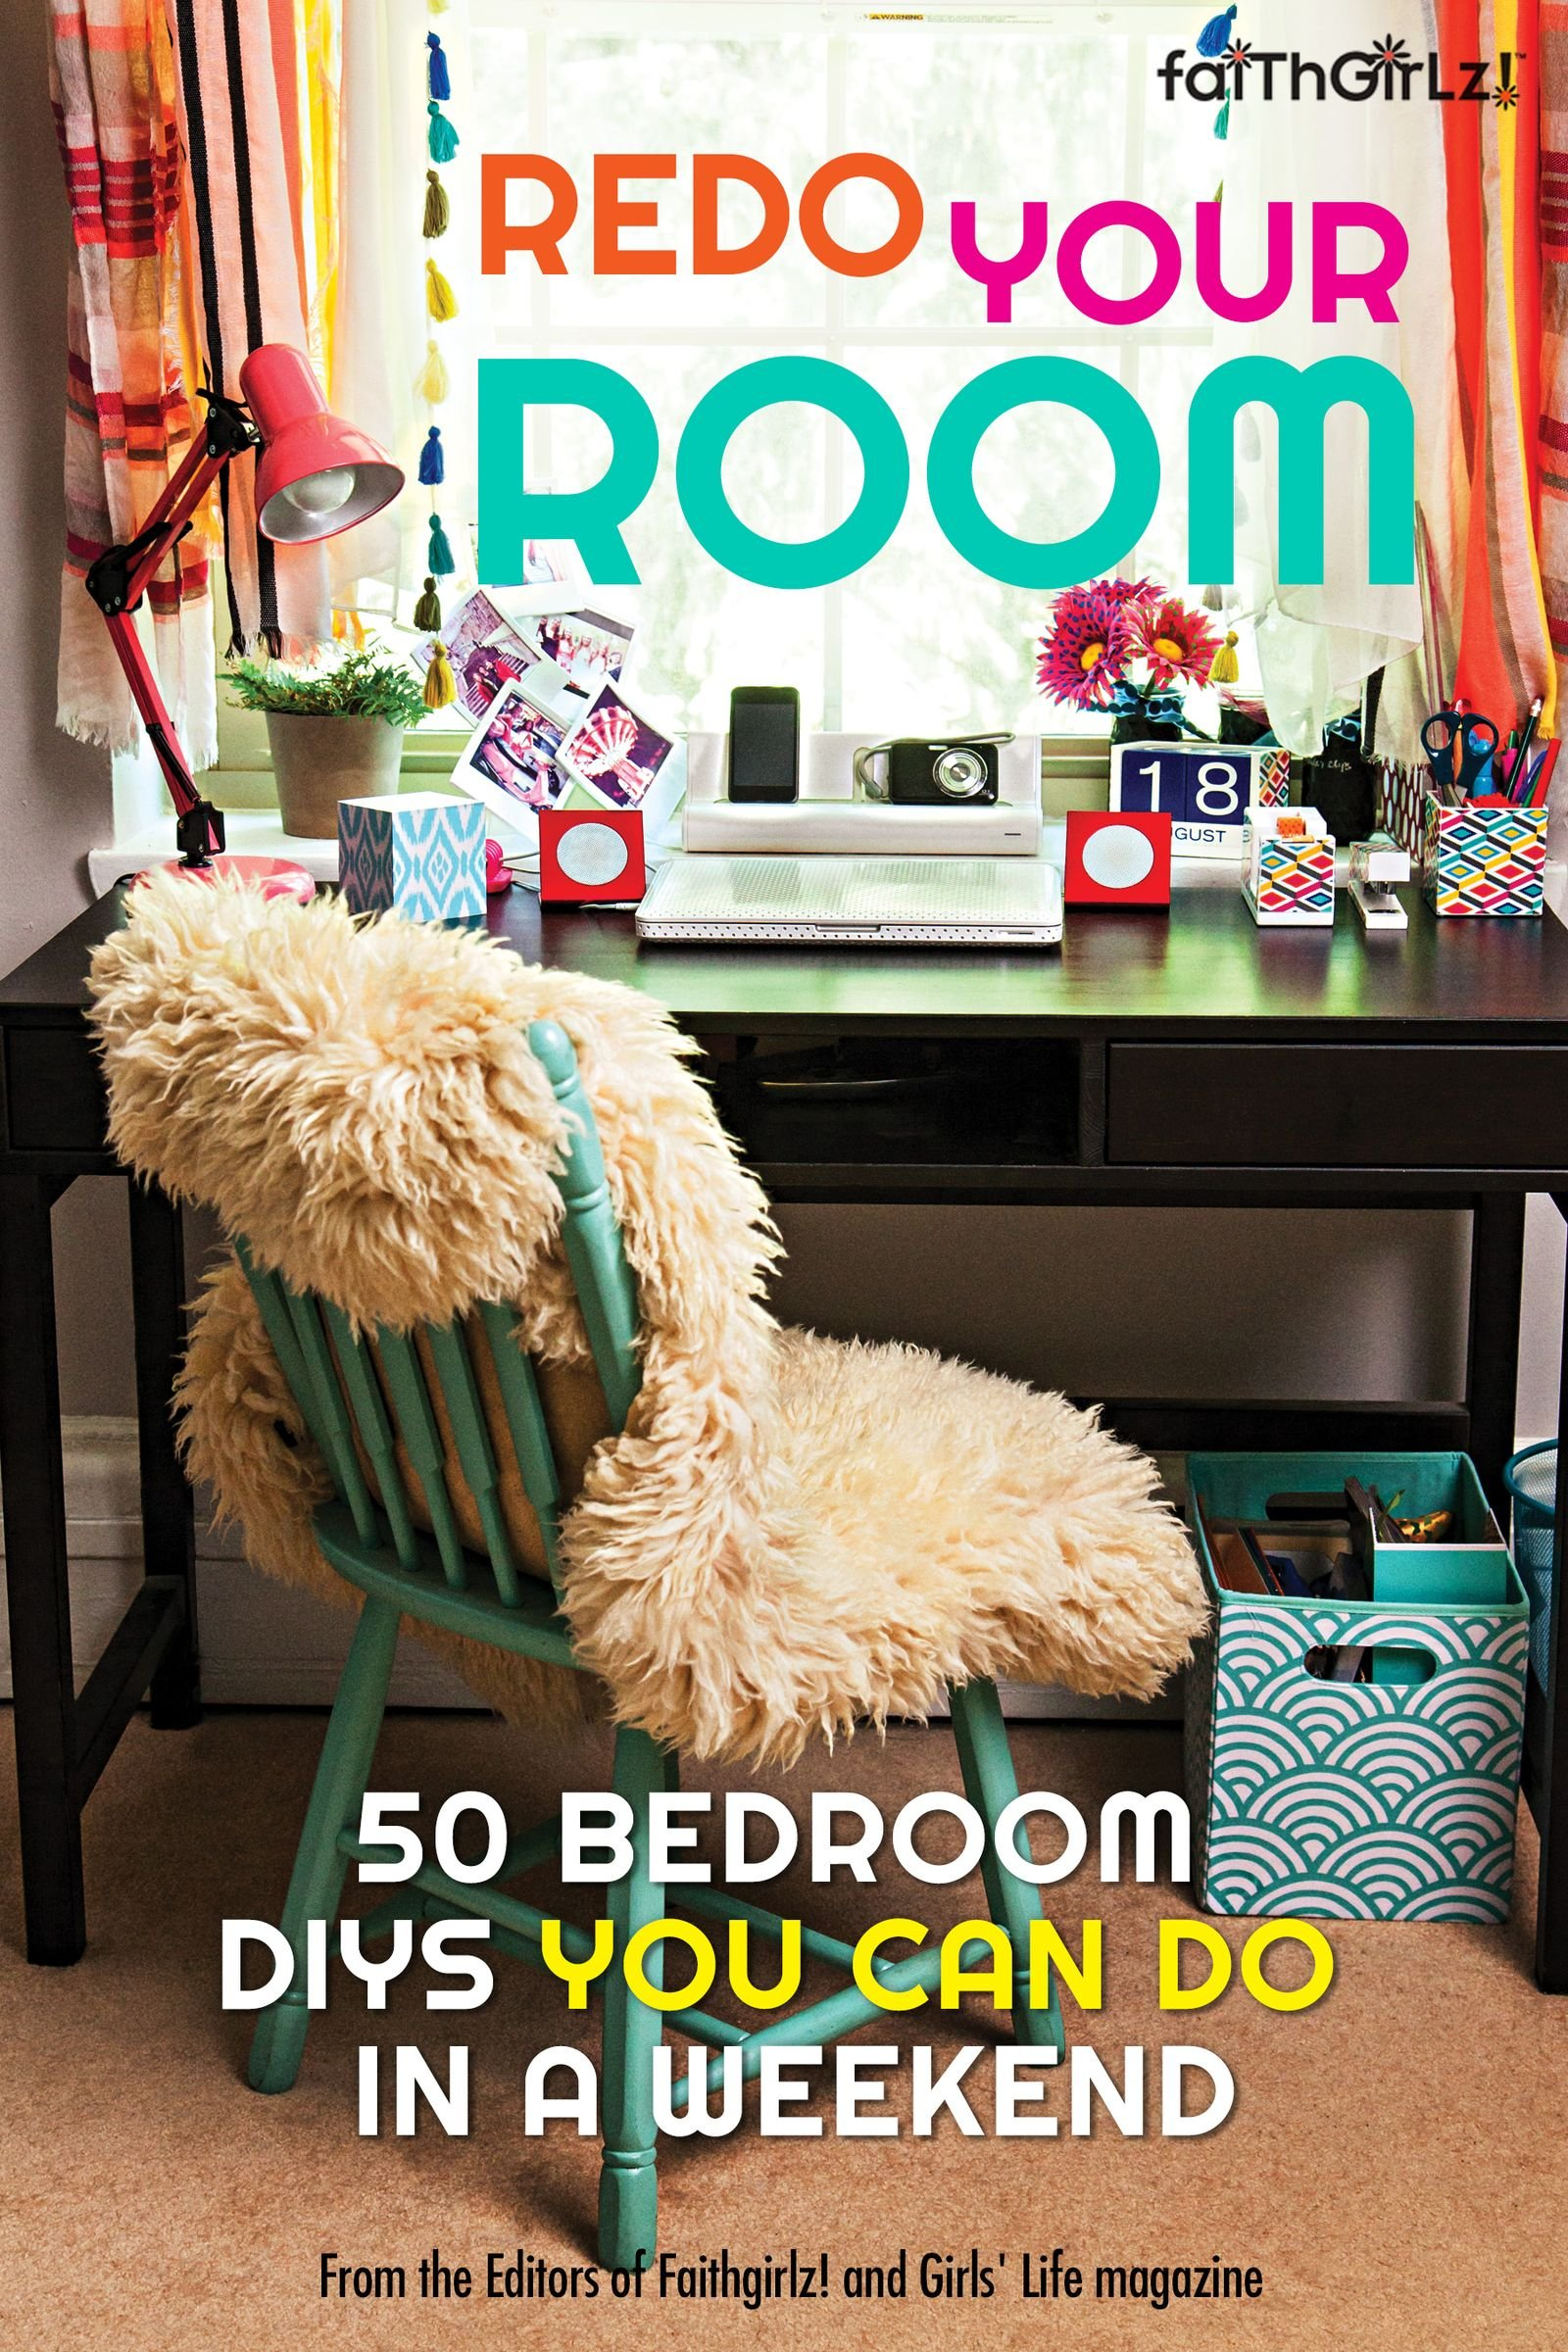 redo your room 50 bedroom diys you can do in a weekend faithgirlz editors of faithgirlz and girls life mag 9780310746324 amazoncom books